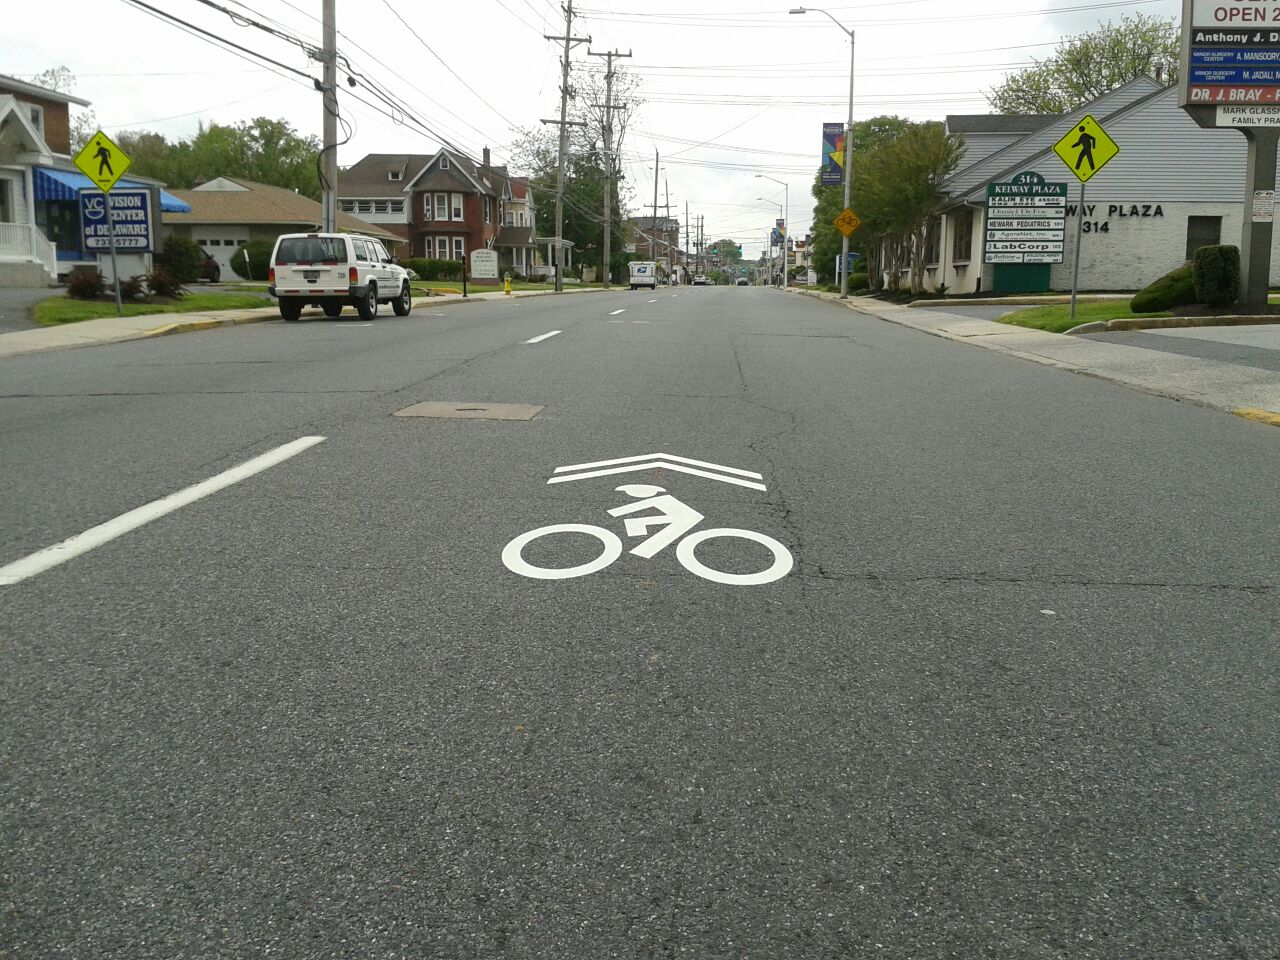 Sharrows on East Main Street